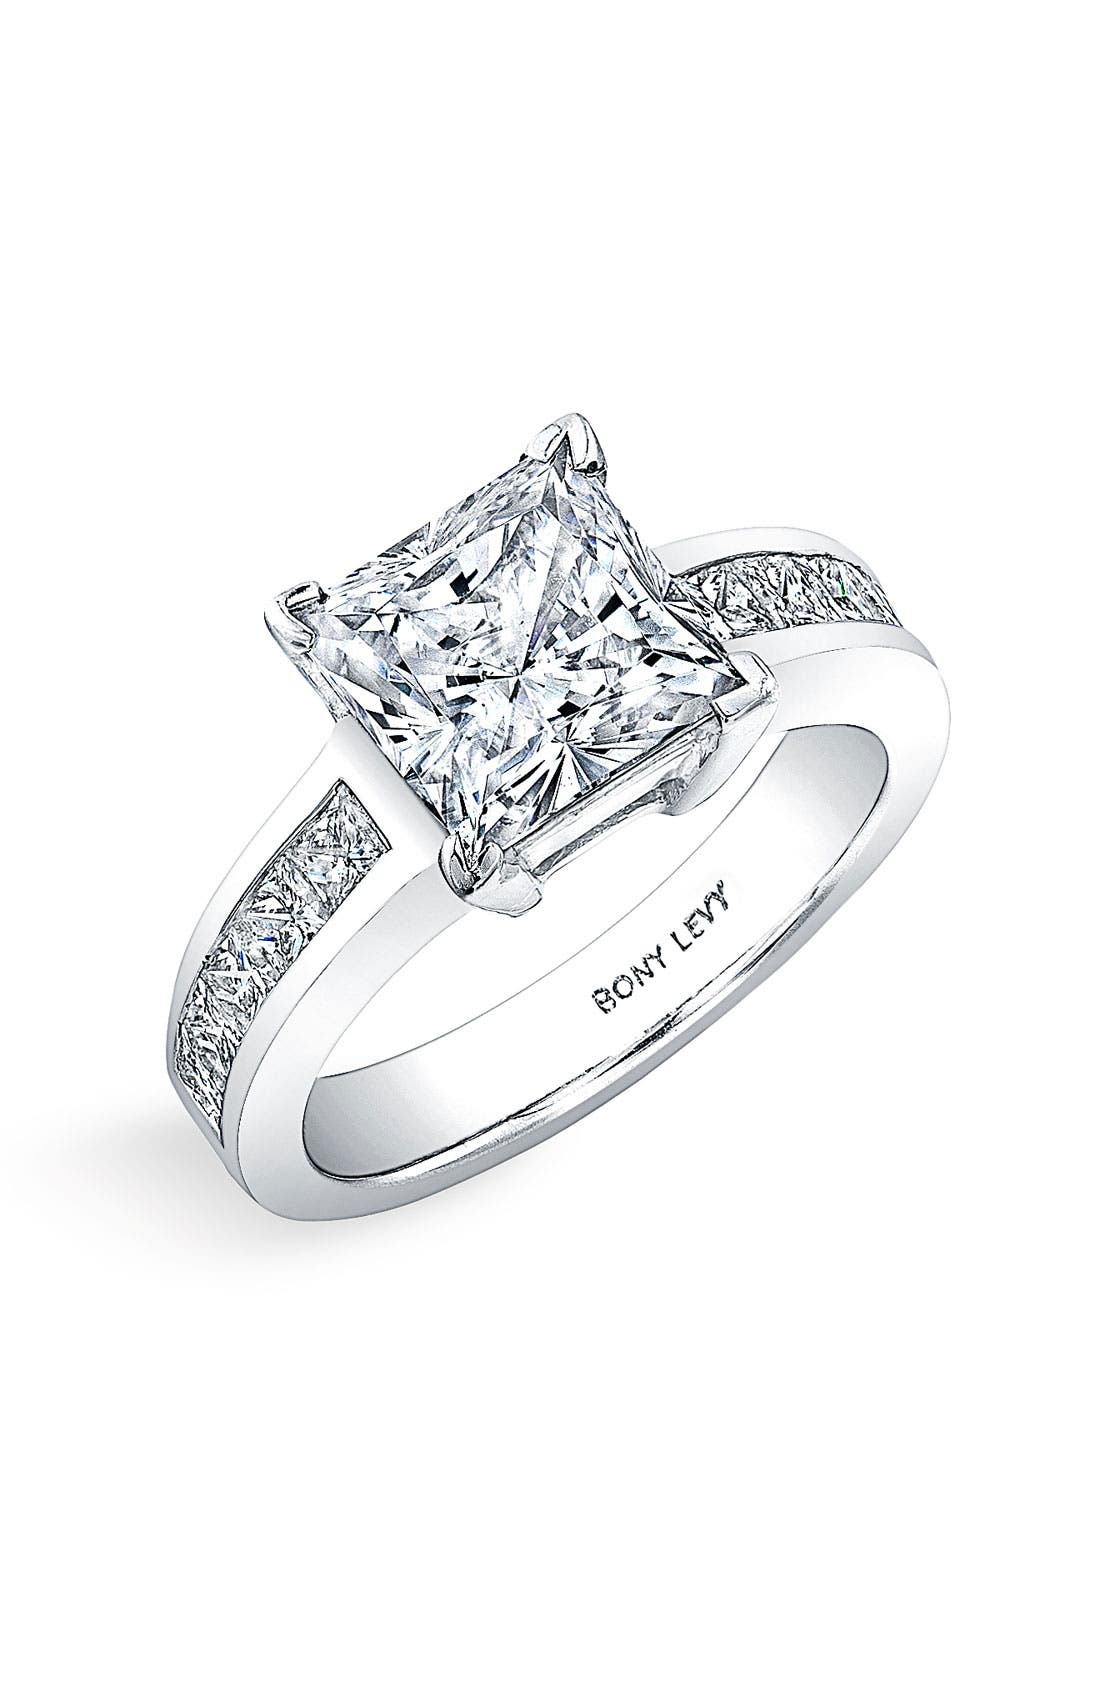 Main Image - Bony Levy Princess Cut Diamond Engagement Ring Setting (Nordstrom Exclusive)